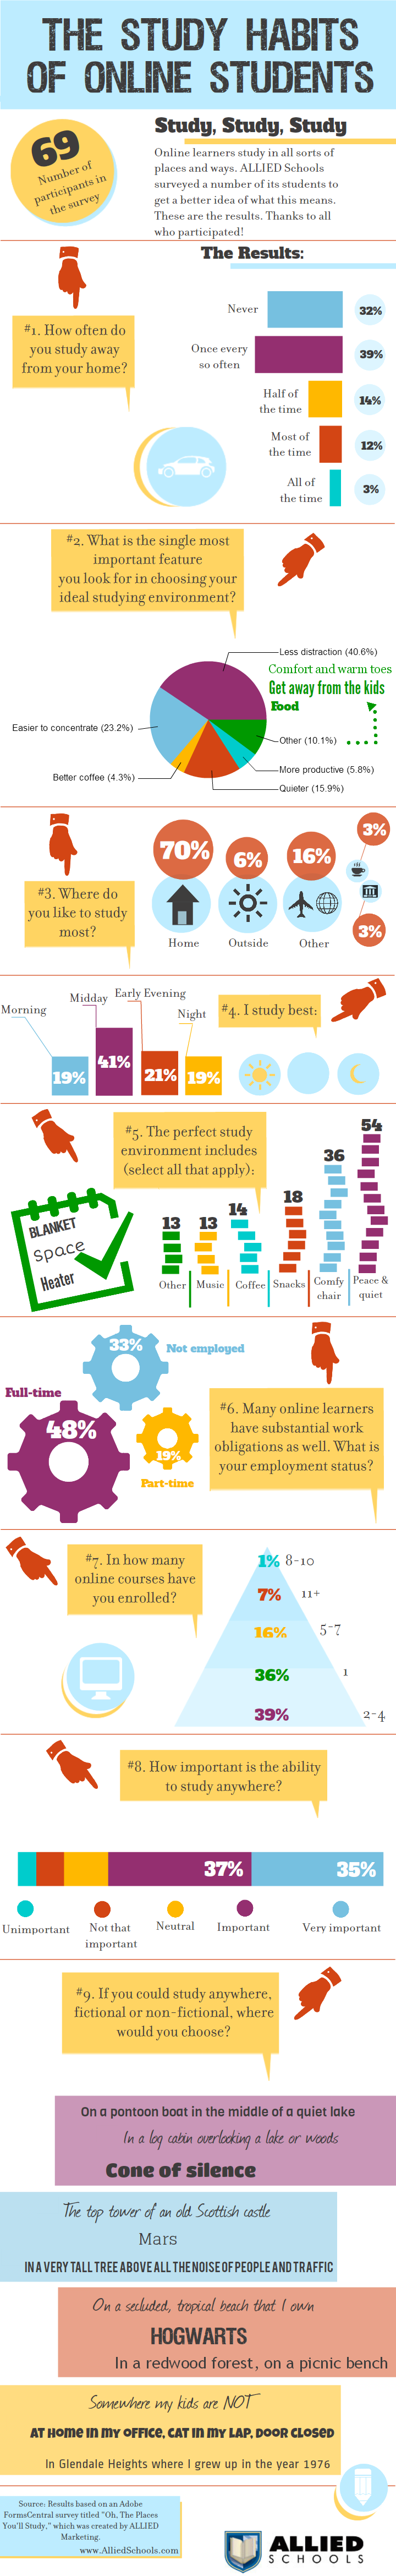 The Study Habits of Online Students